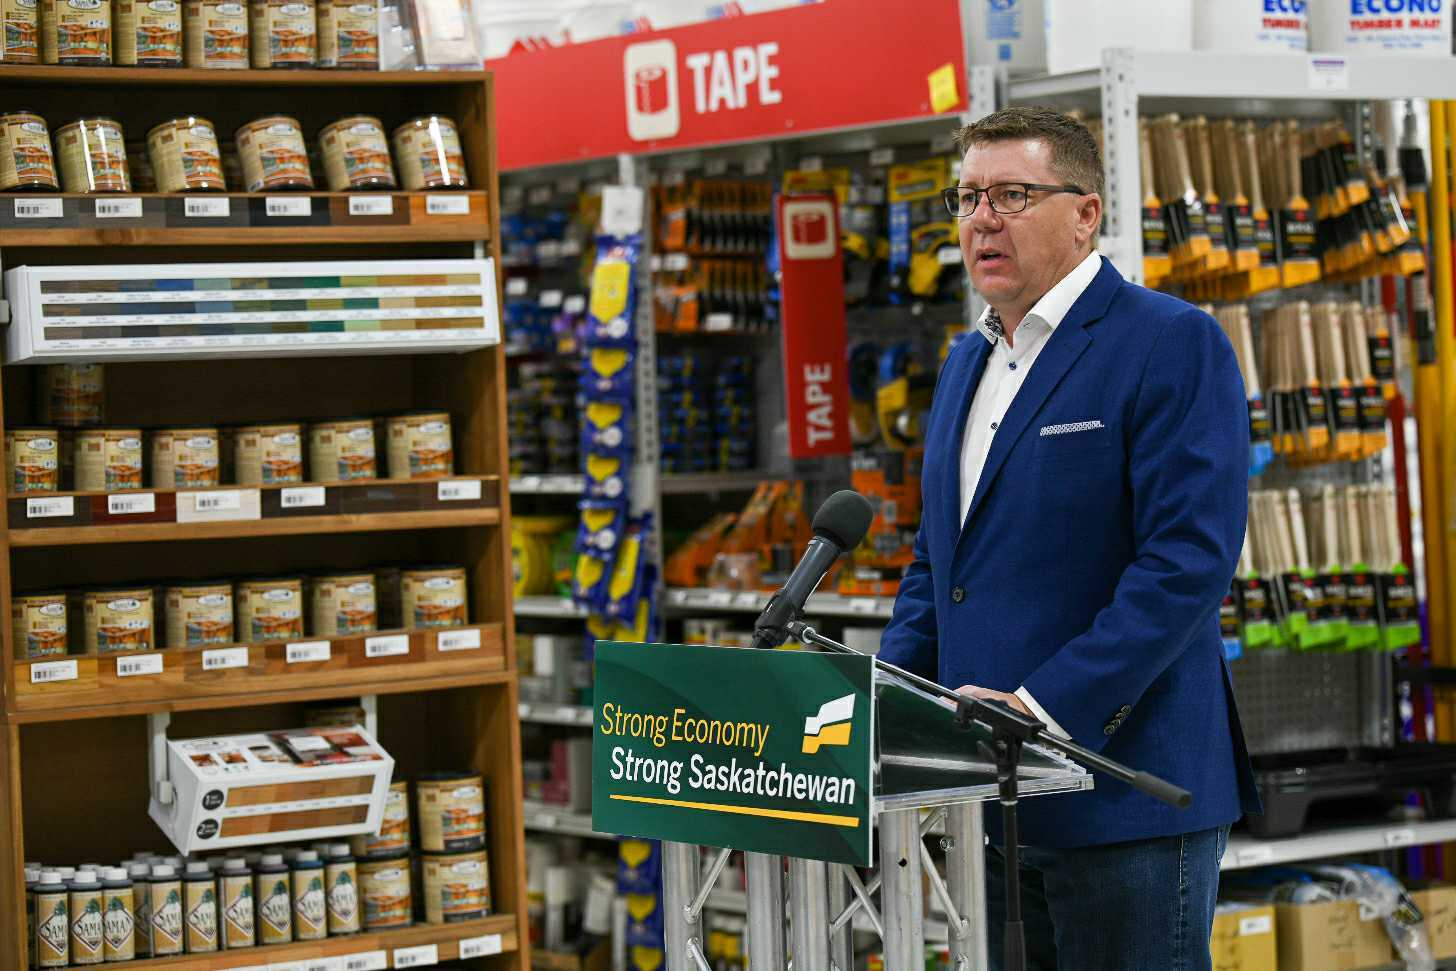 Saskatchewan Party Will Reduce Small Business Tax to Help Drive Economic Recovery